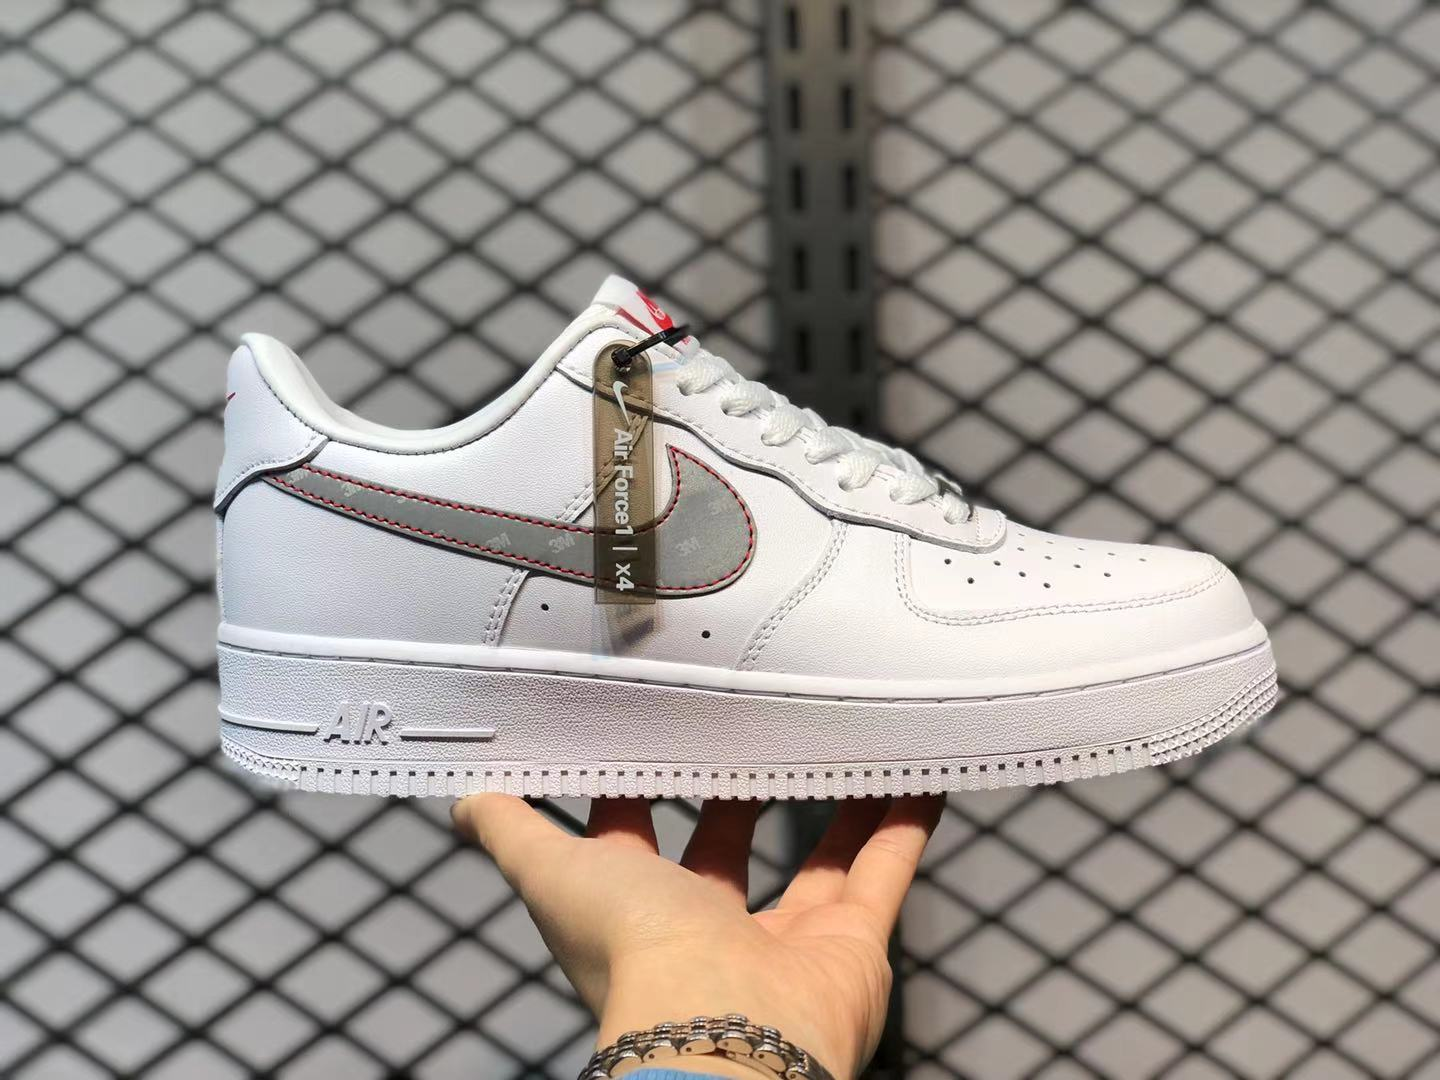 """CT2296-100 Nike Air Force 1 Low """"3M Swoosh"""" White/Silver ..."""